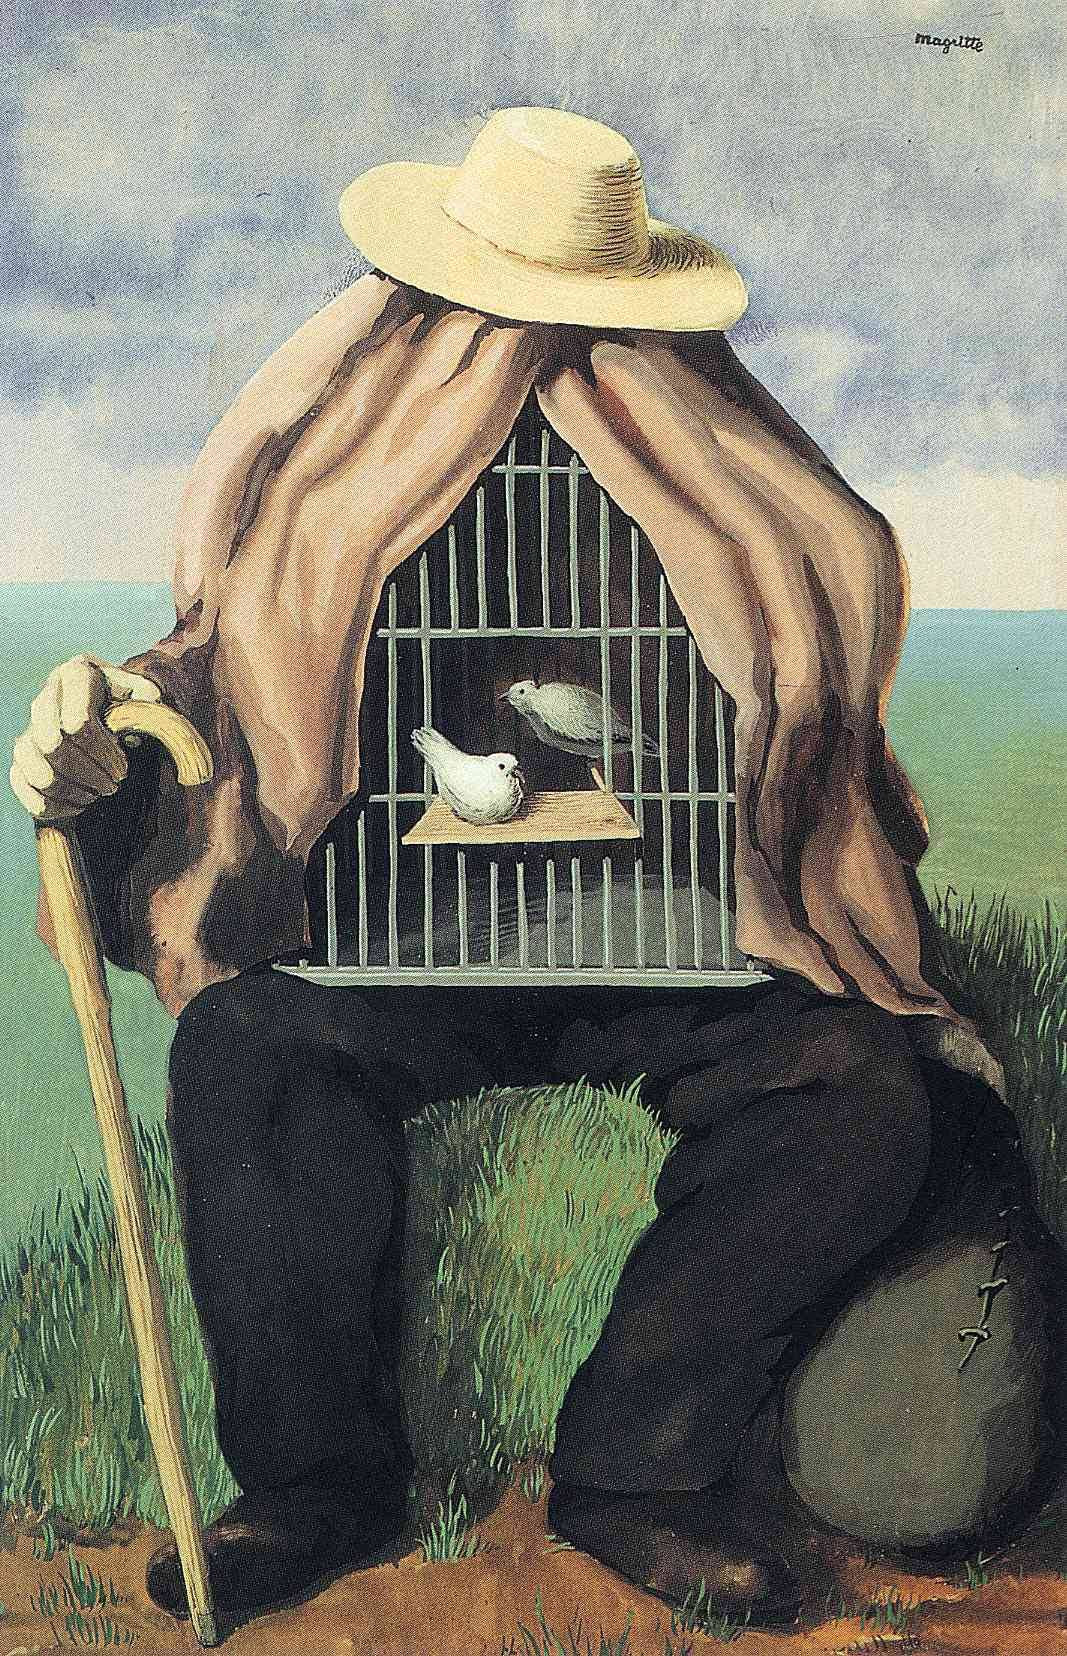 The therapeutist Rene Magritte